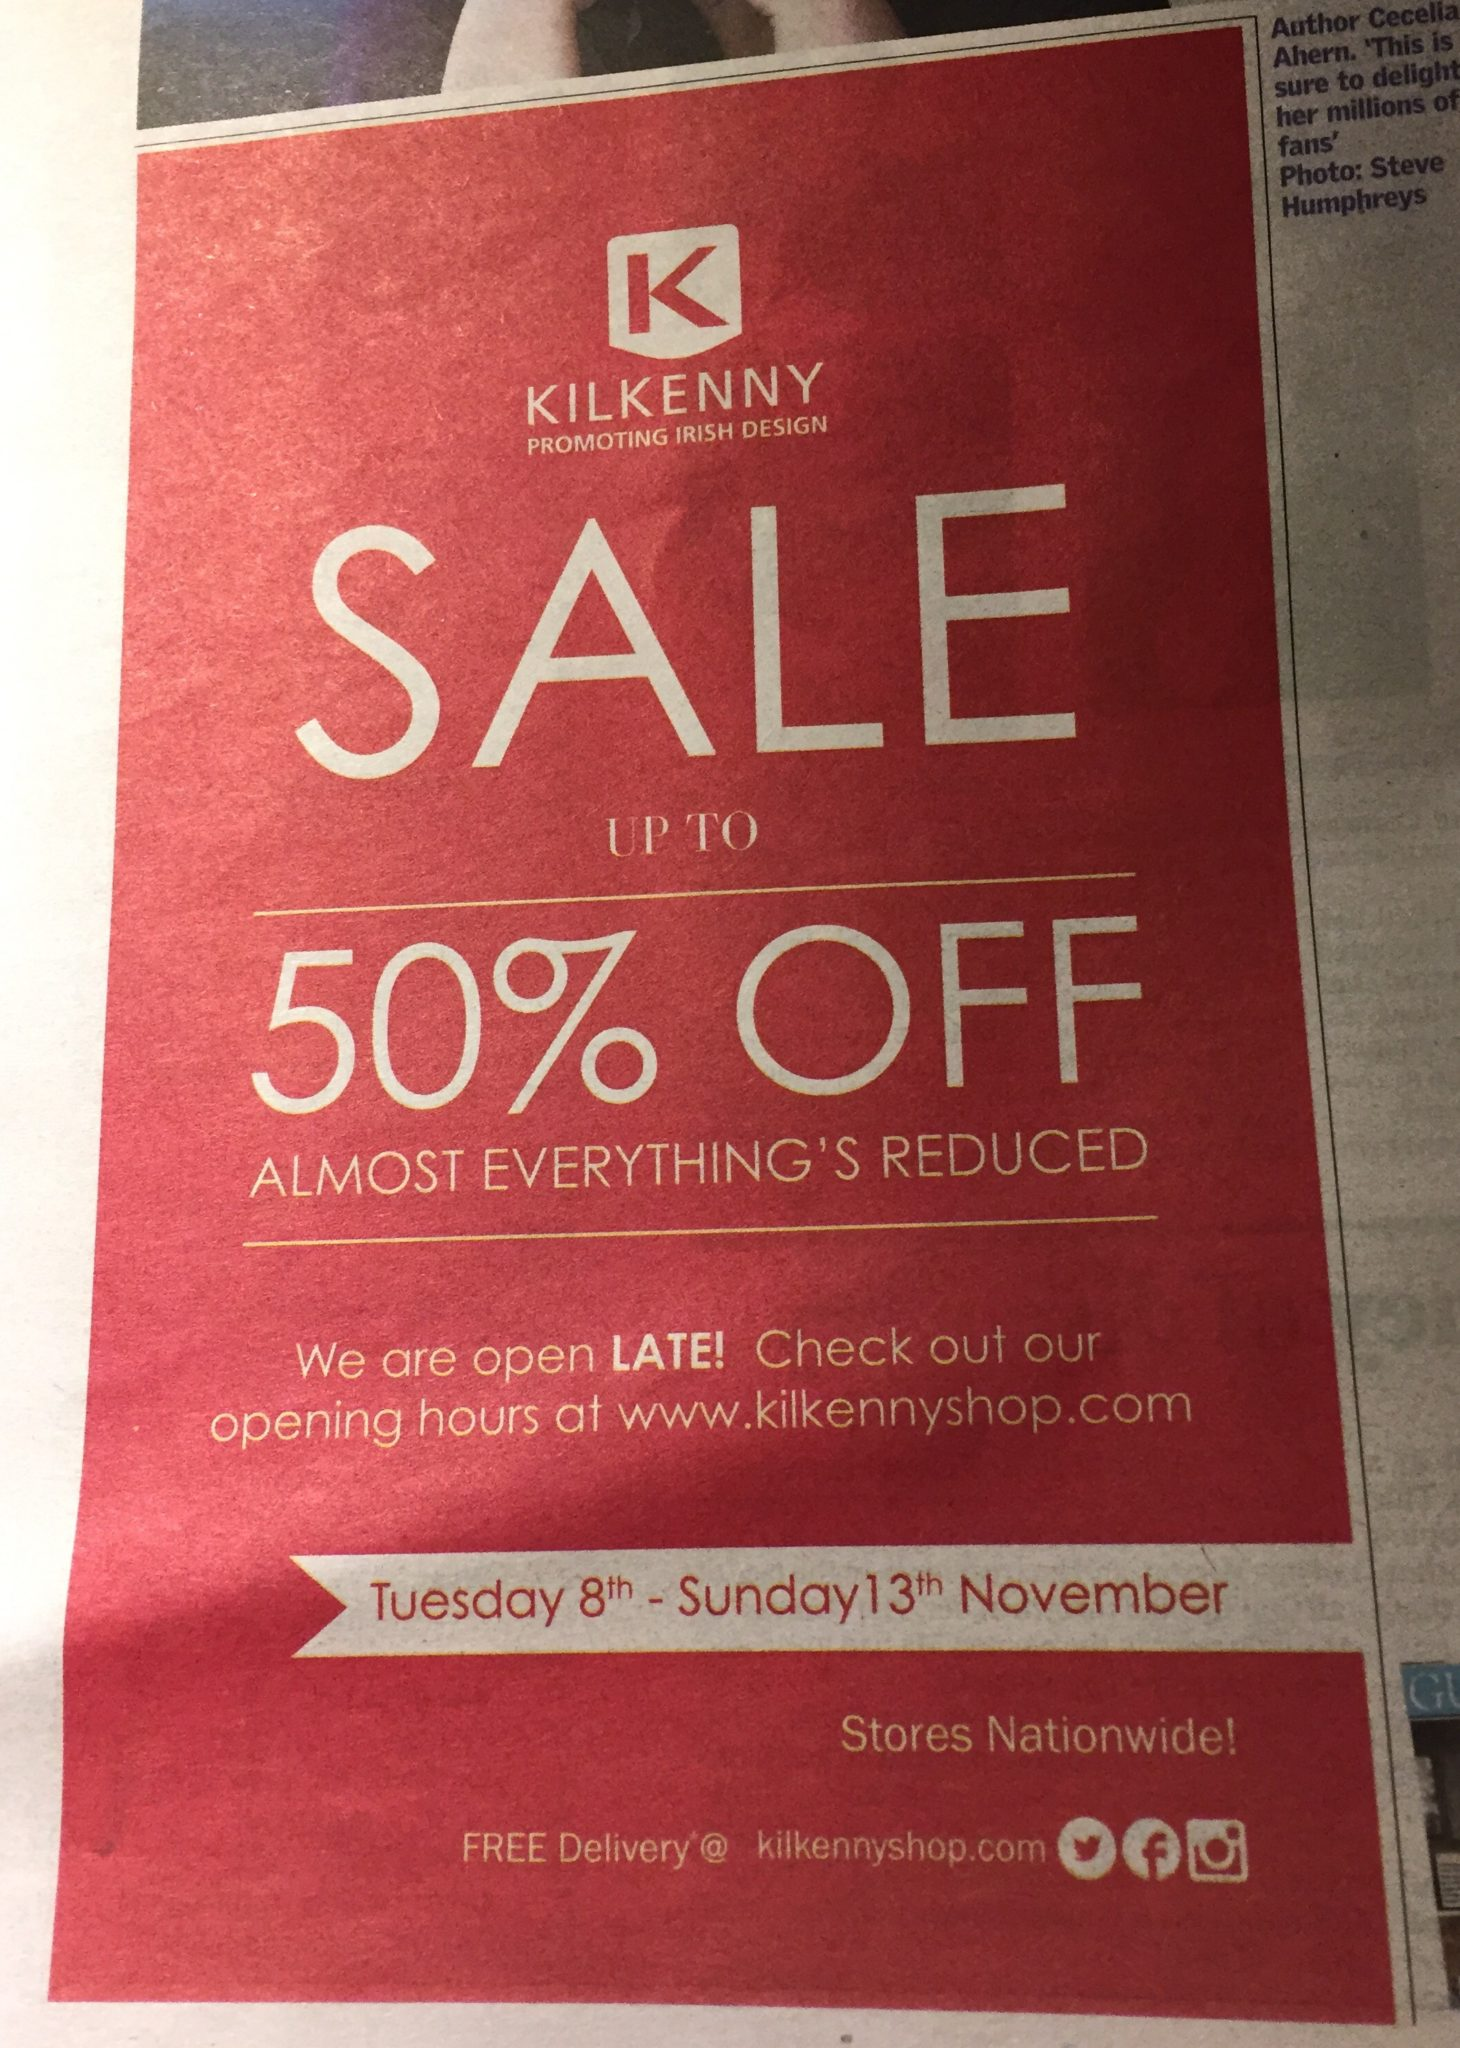 Kilkenny – sale up to 50% off